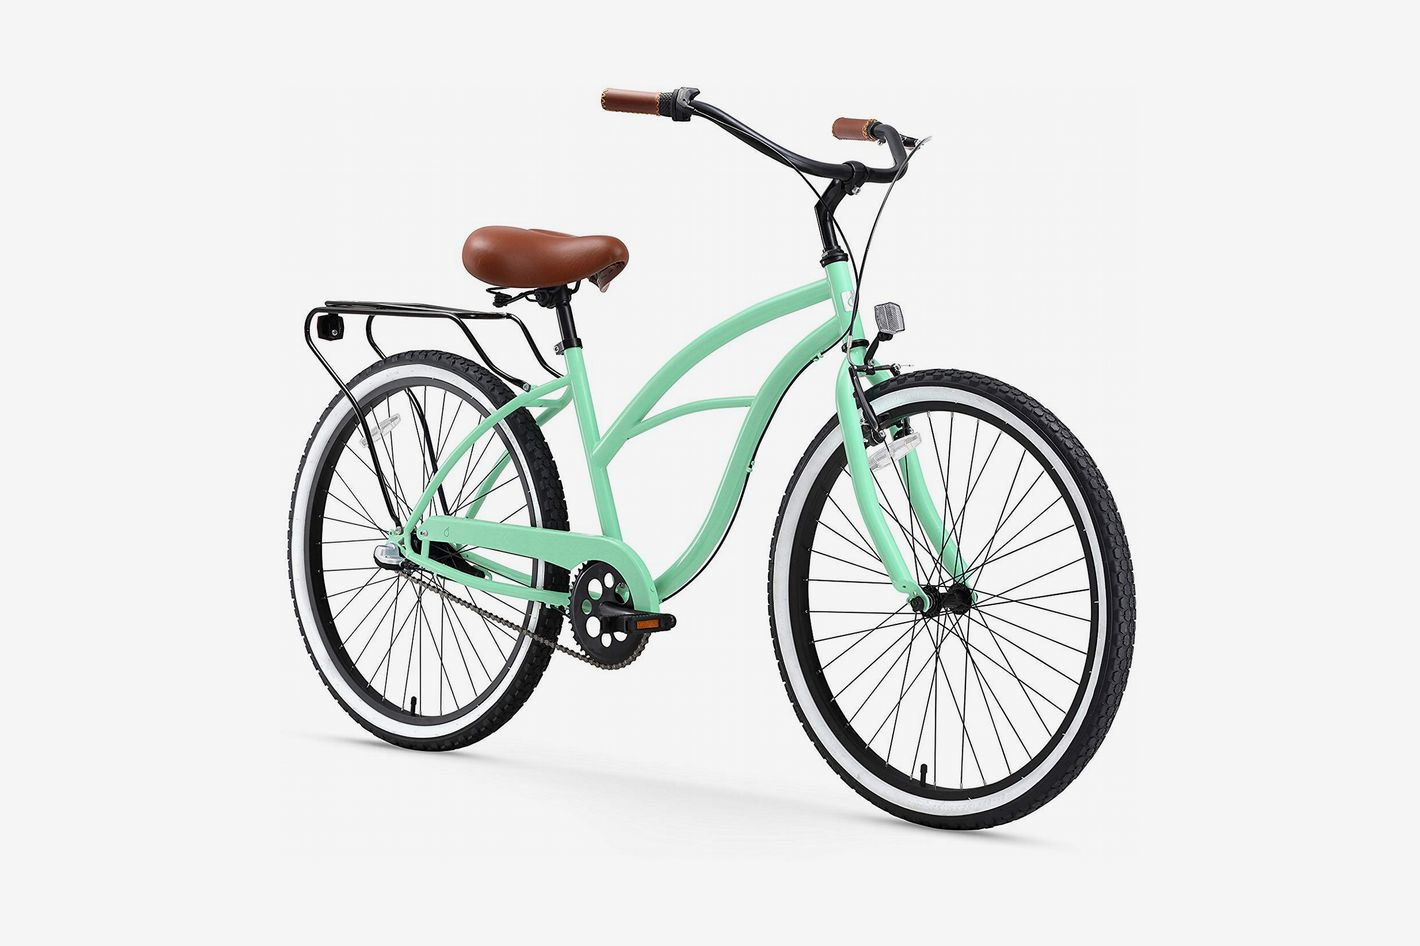 Sixthreezero Around the Block Women's Cruiser Bike